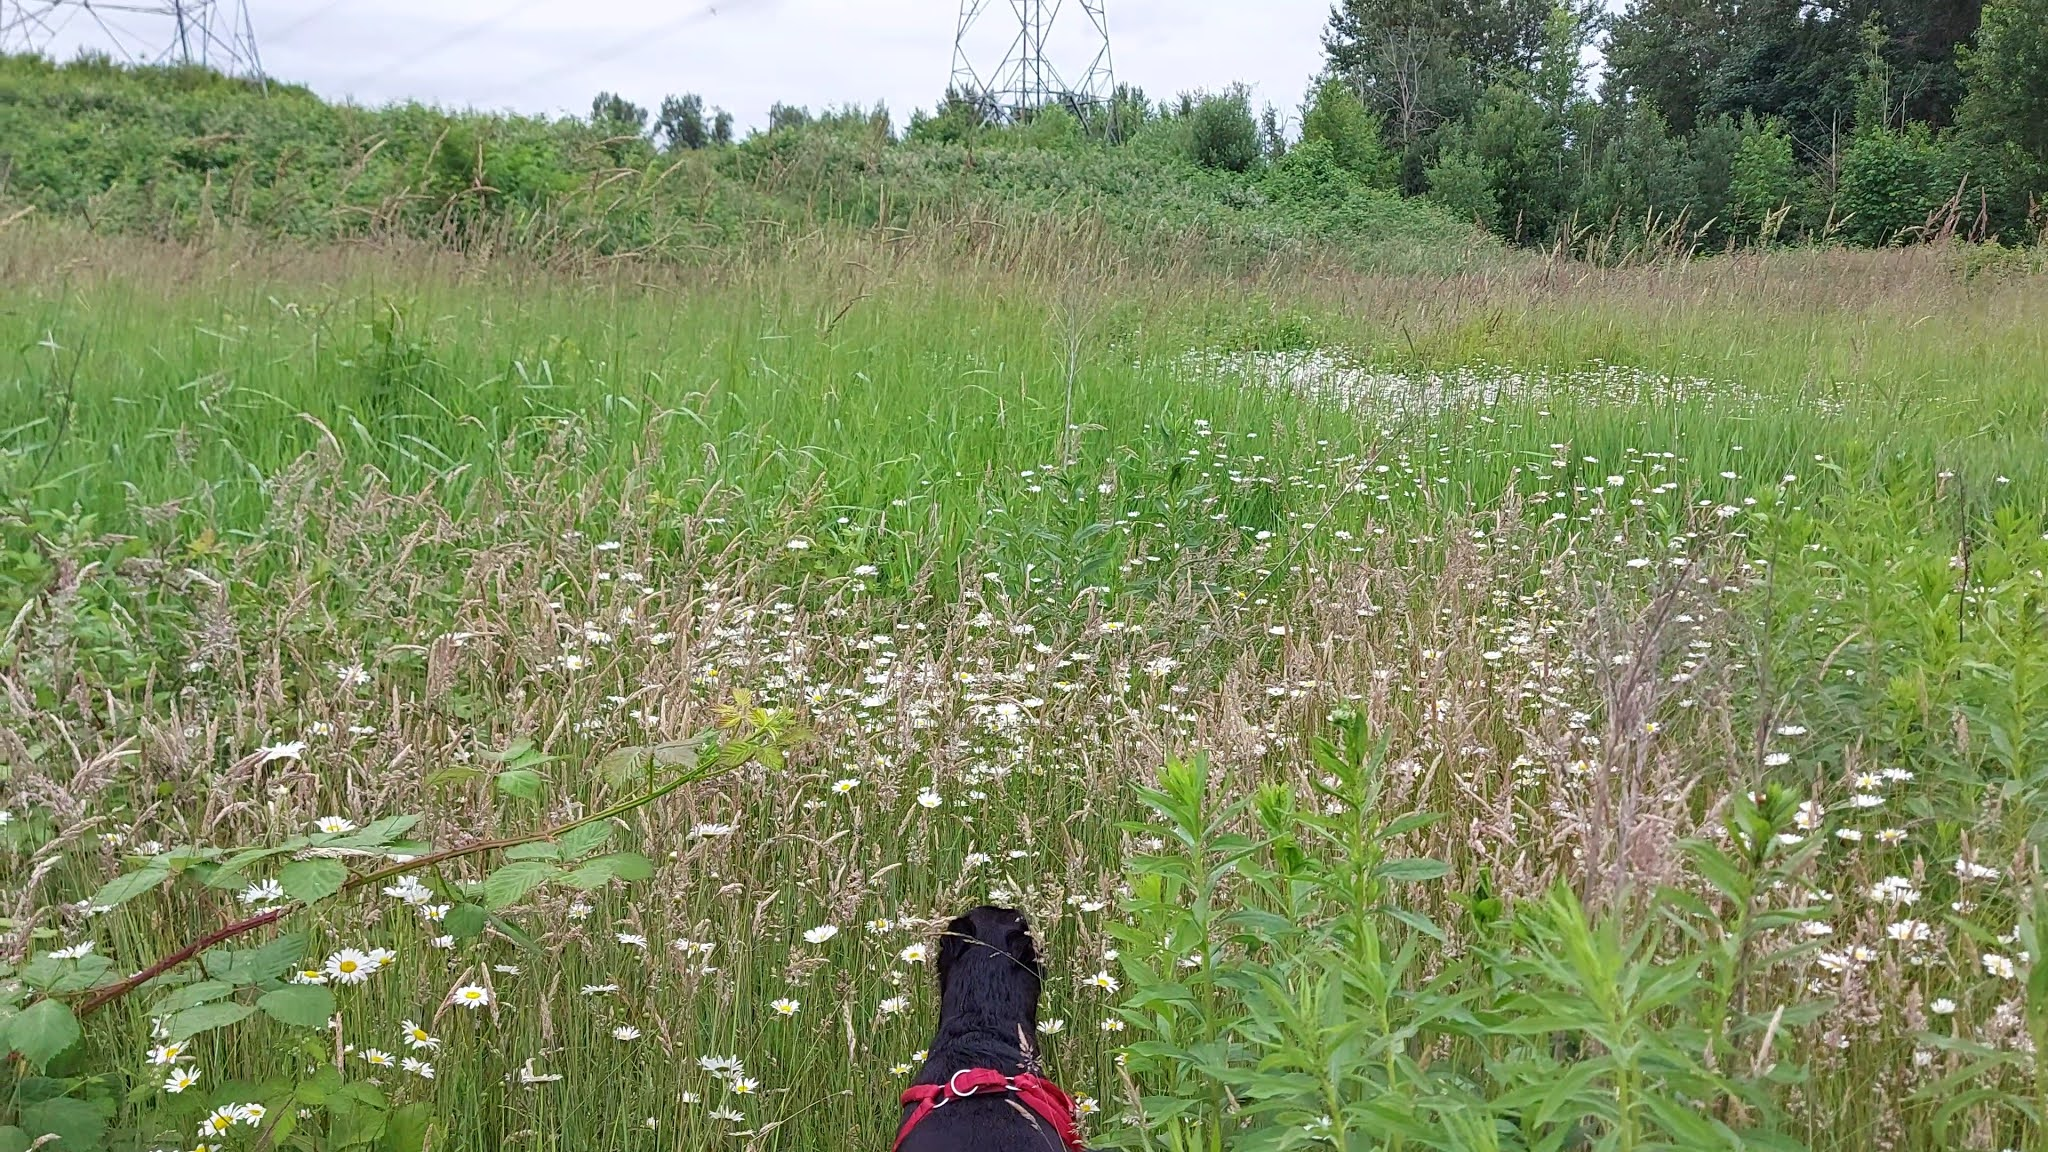 Dog in the fields